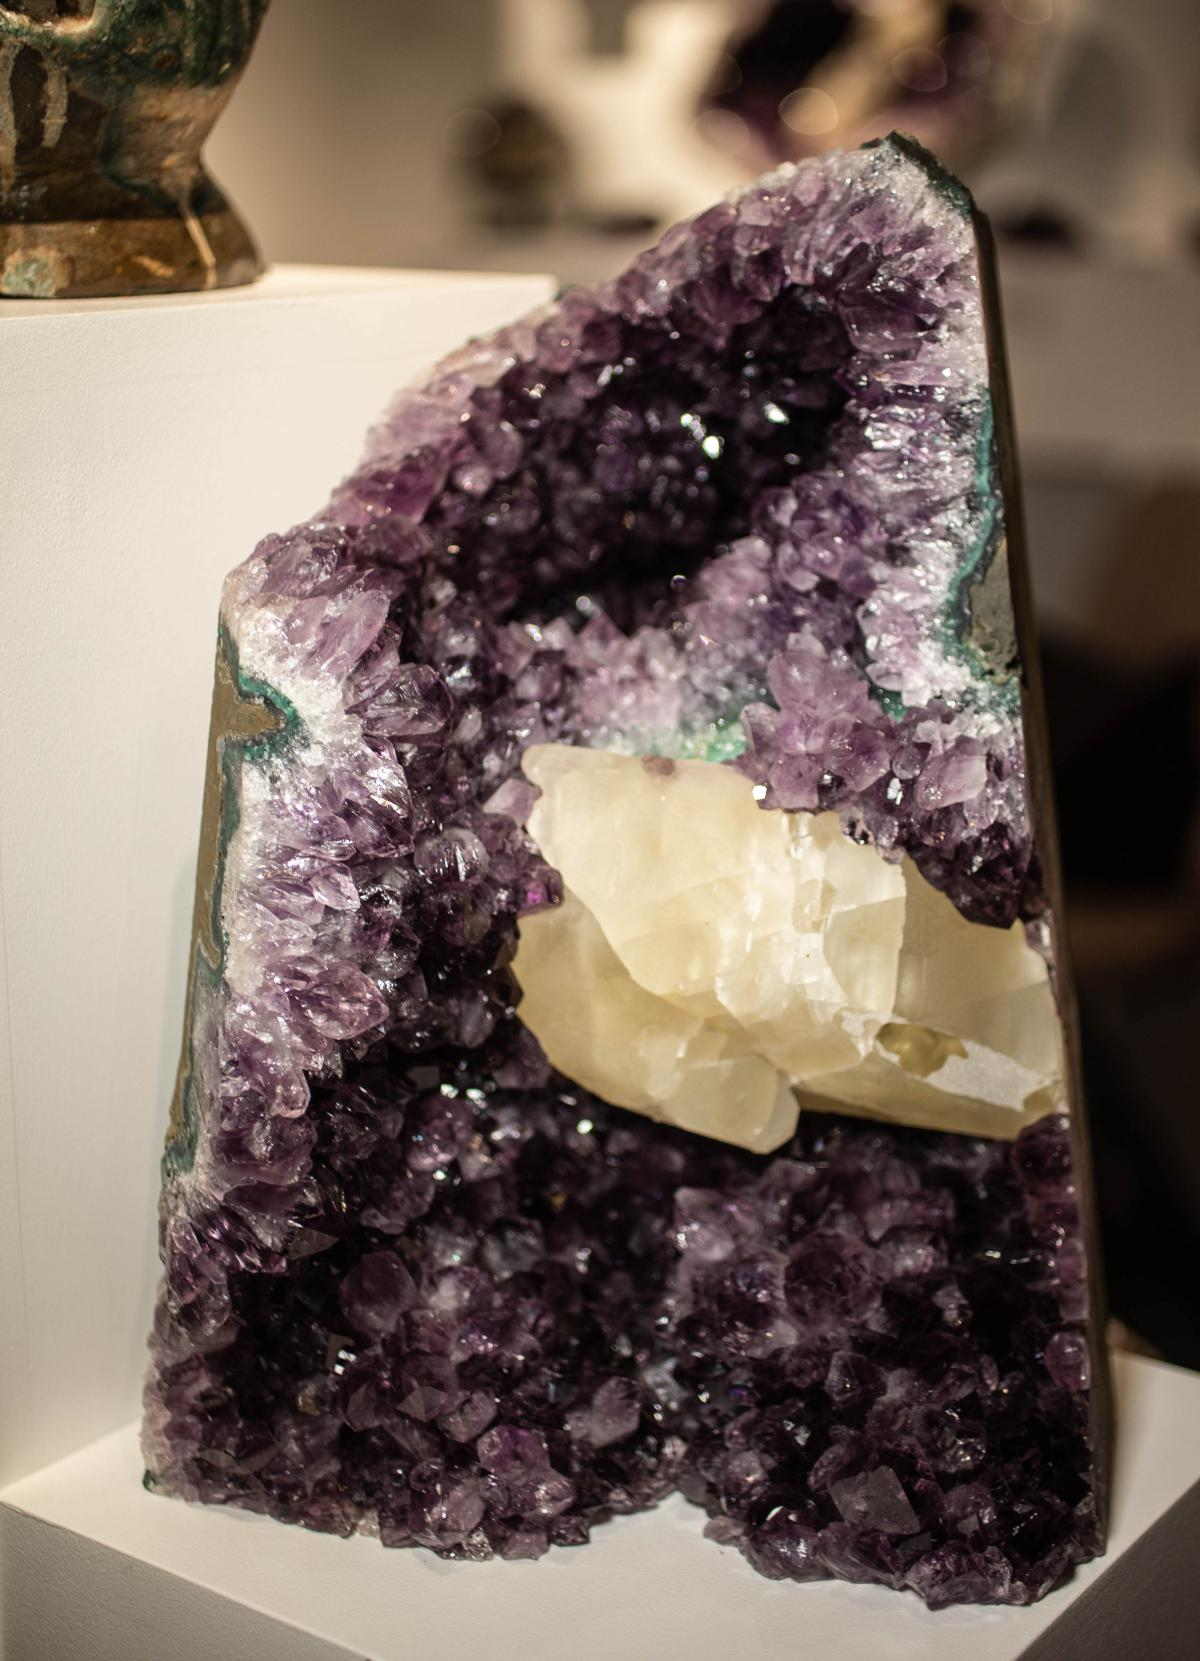 LARGE ROUGH AMETHYST WITH CALCITE FORMATION